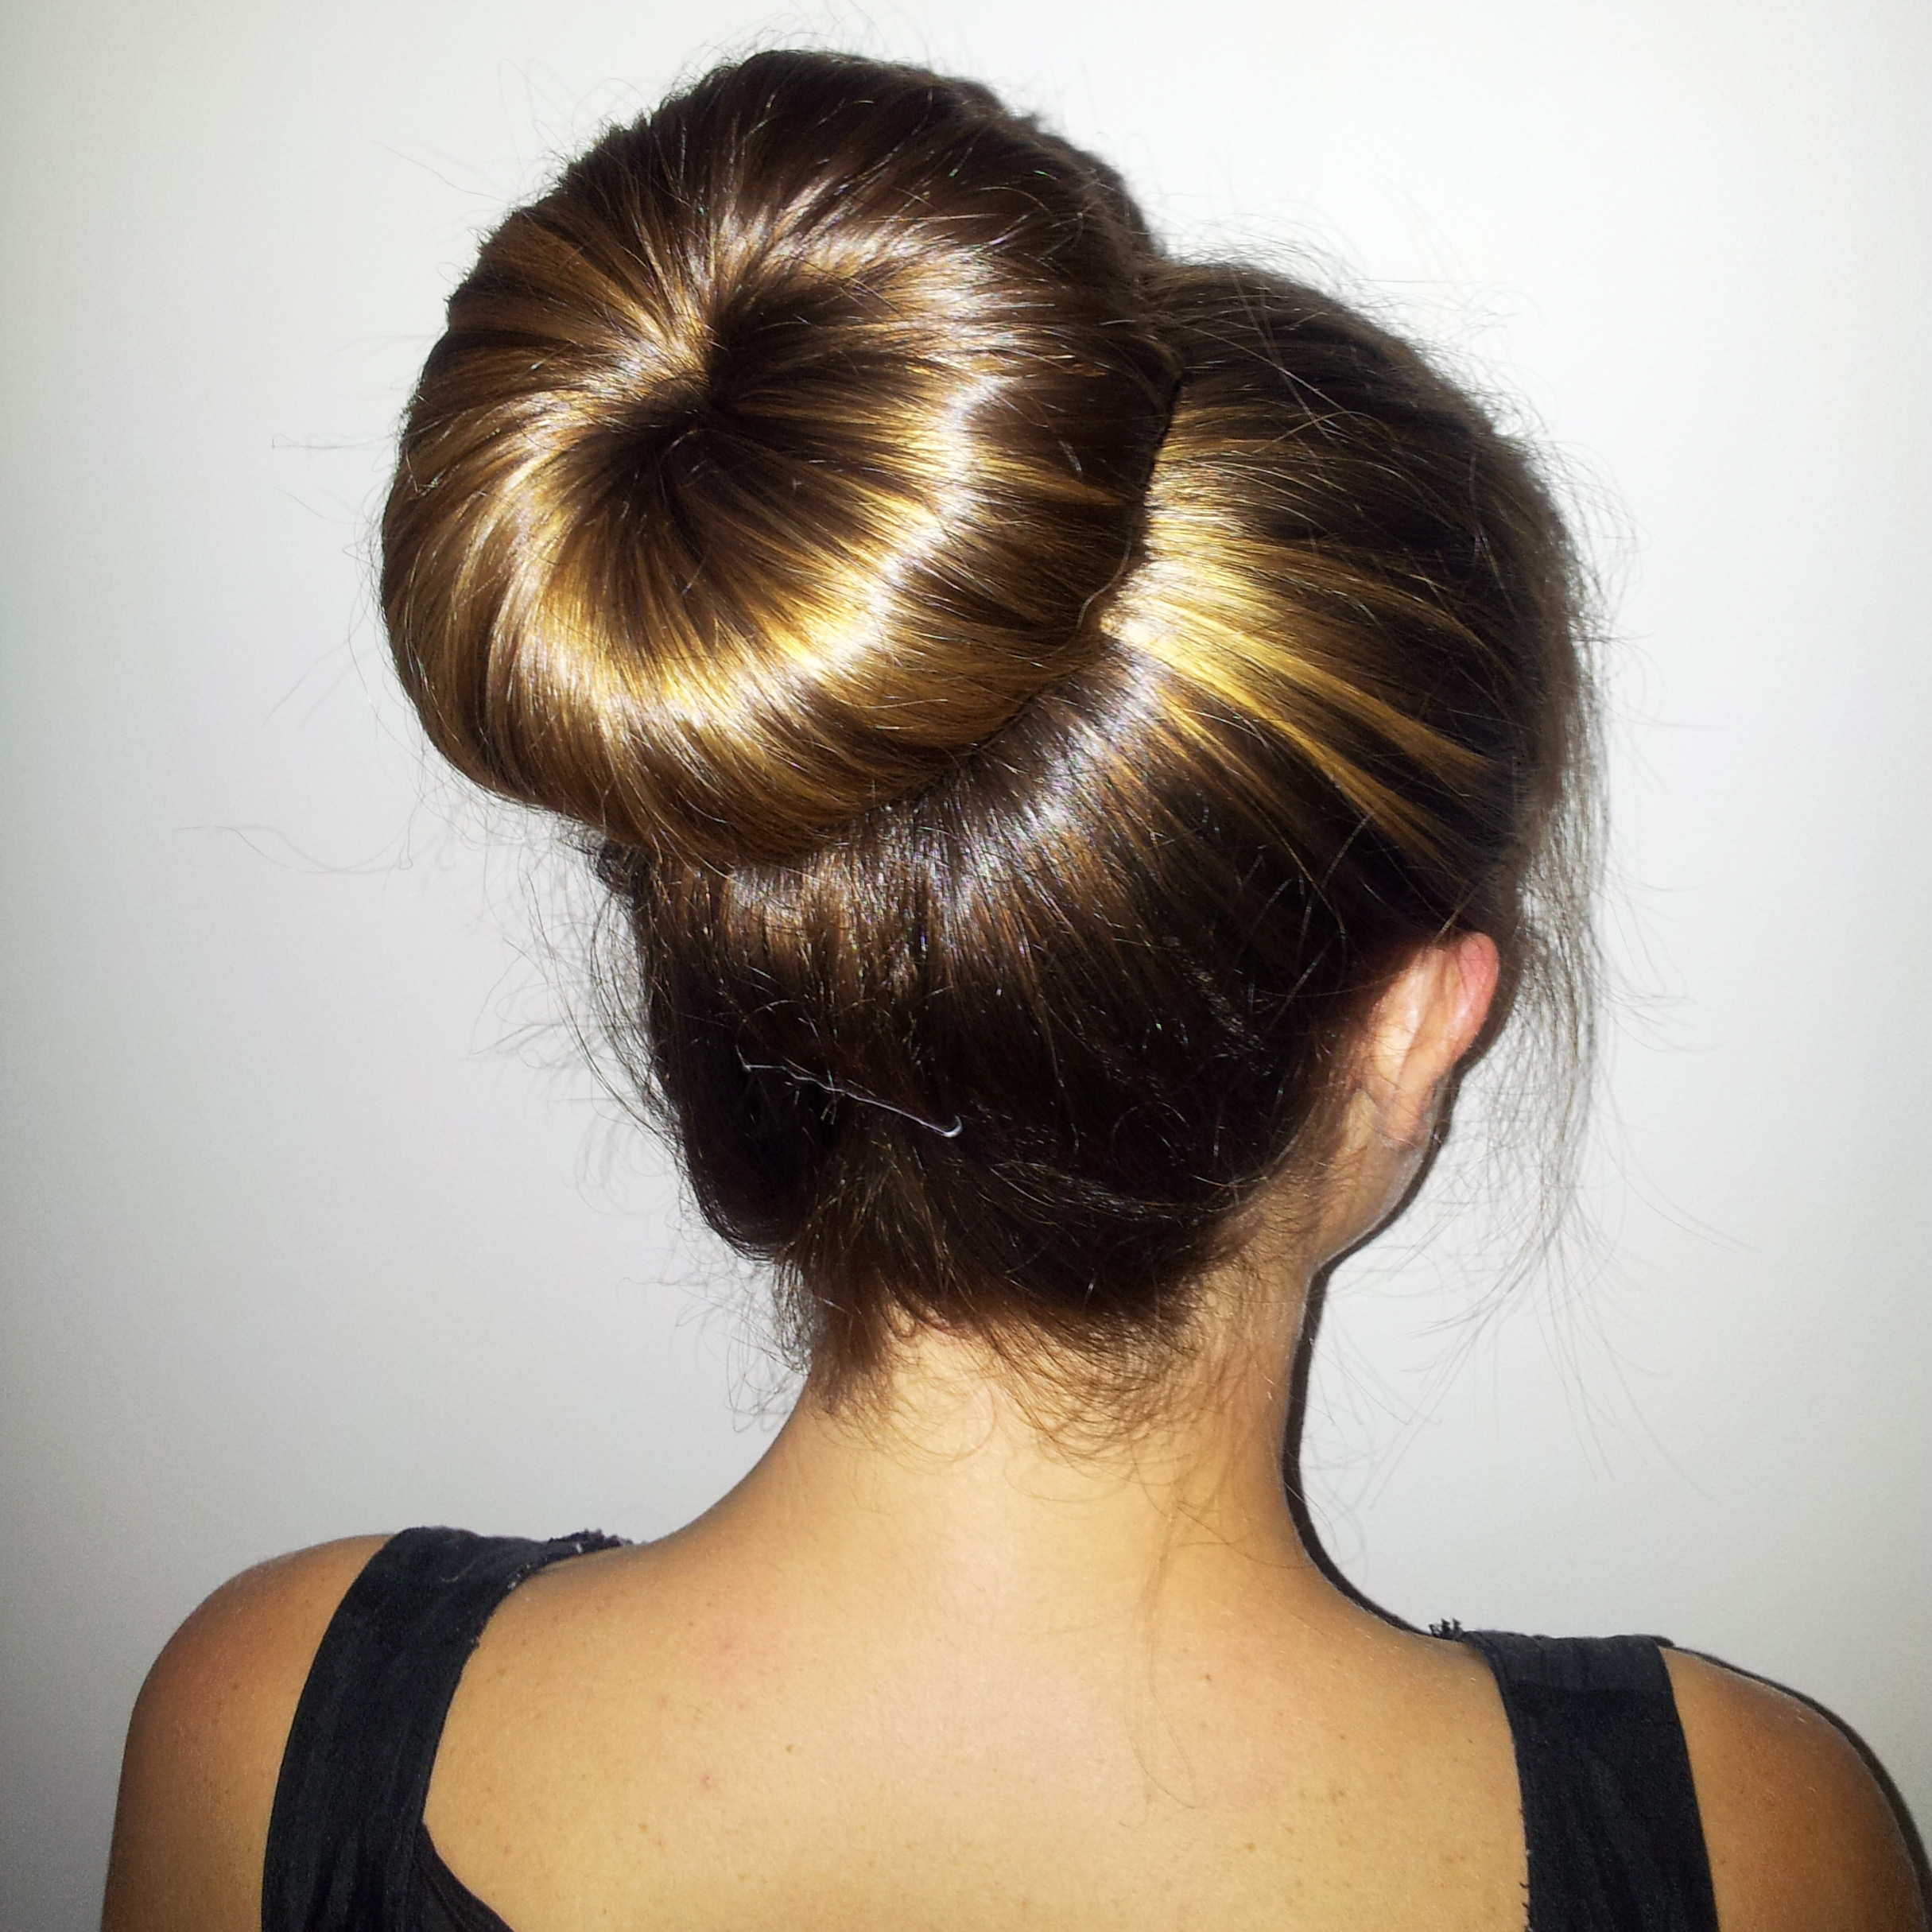 Foolproof hacks, tips and tricks to create the perfect sock bun (how to bun hair messy) Find this Pin and more on Unique Hair Ideas by ♡*LuLu*♡. Having long hair .